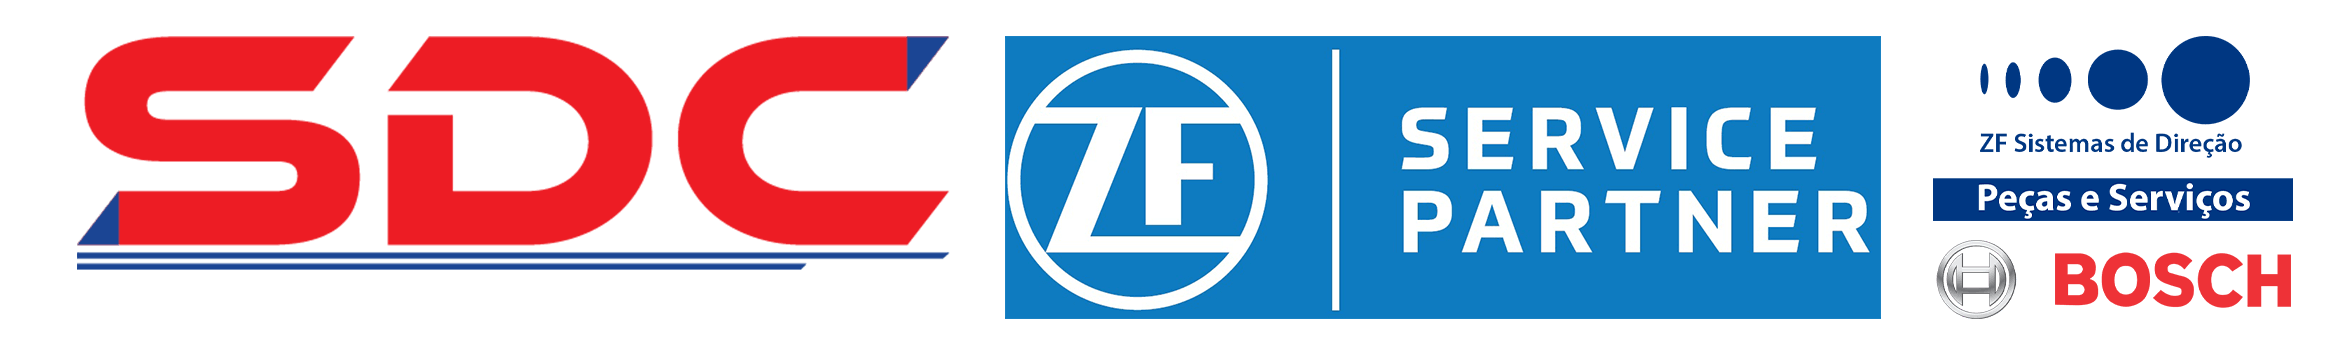 SDC ZF – Service Diesel Center